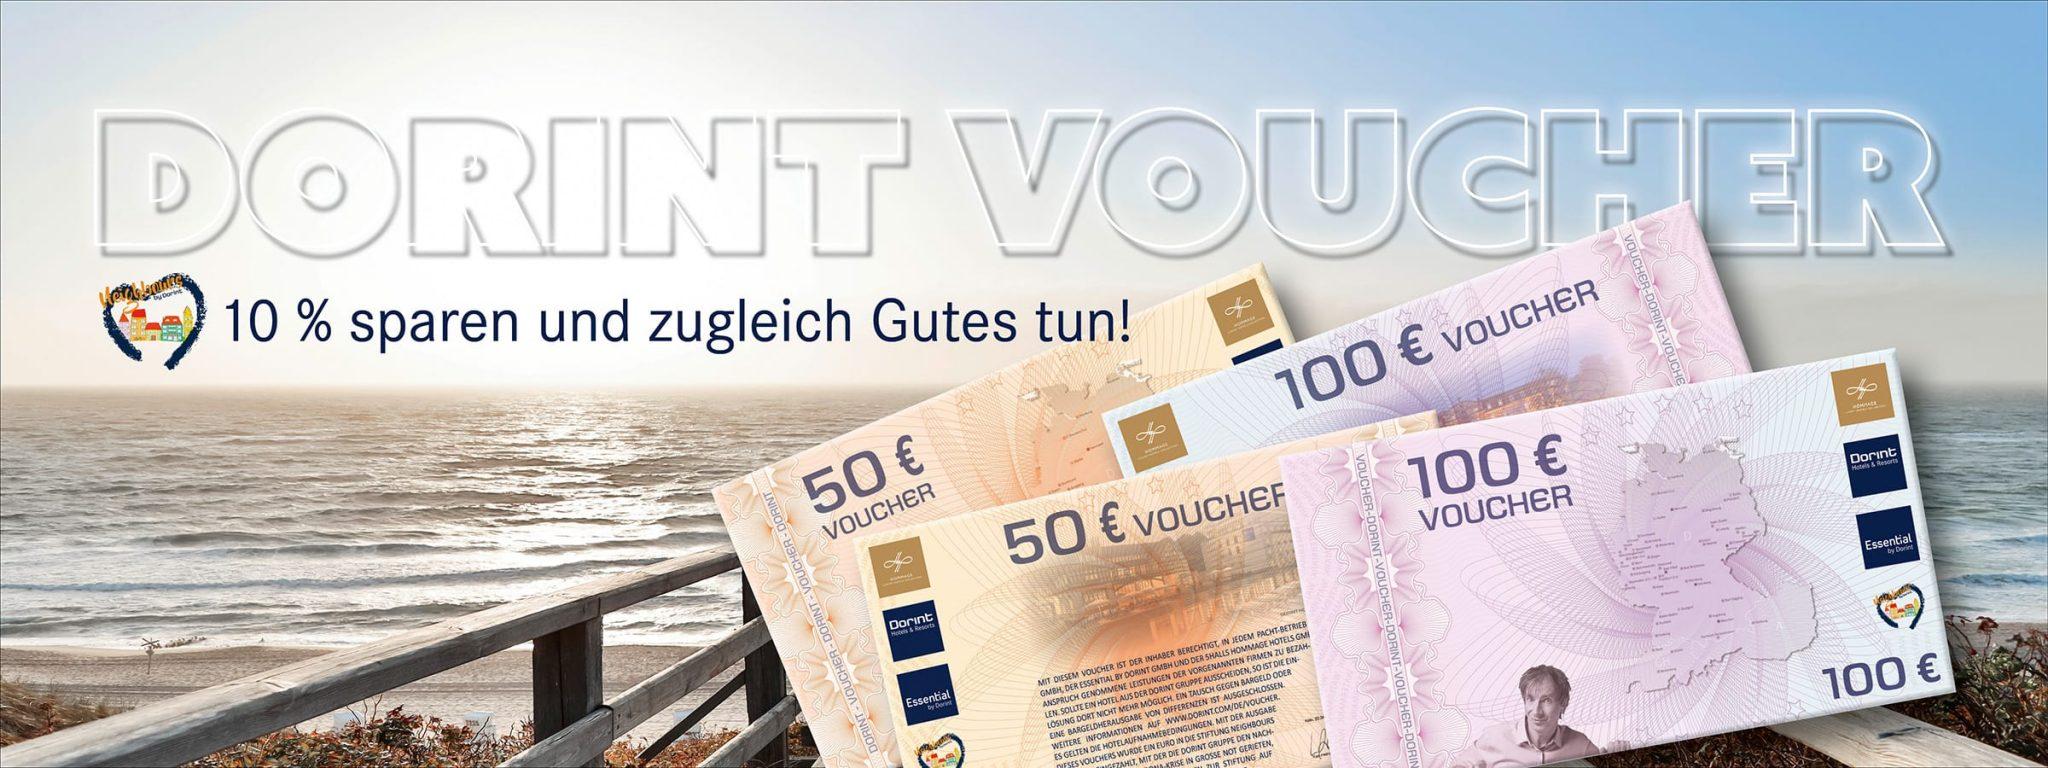 Dorint Voucher